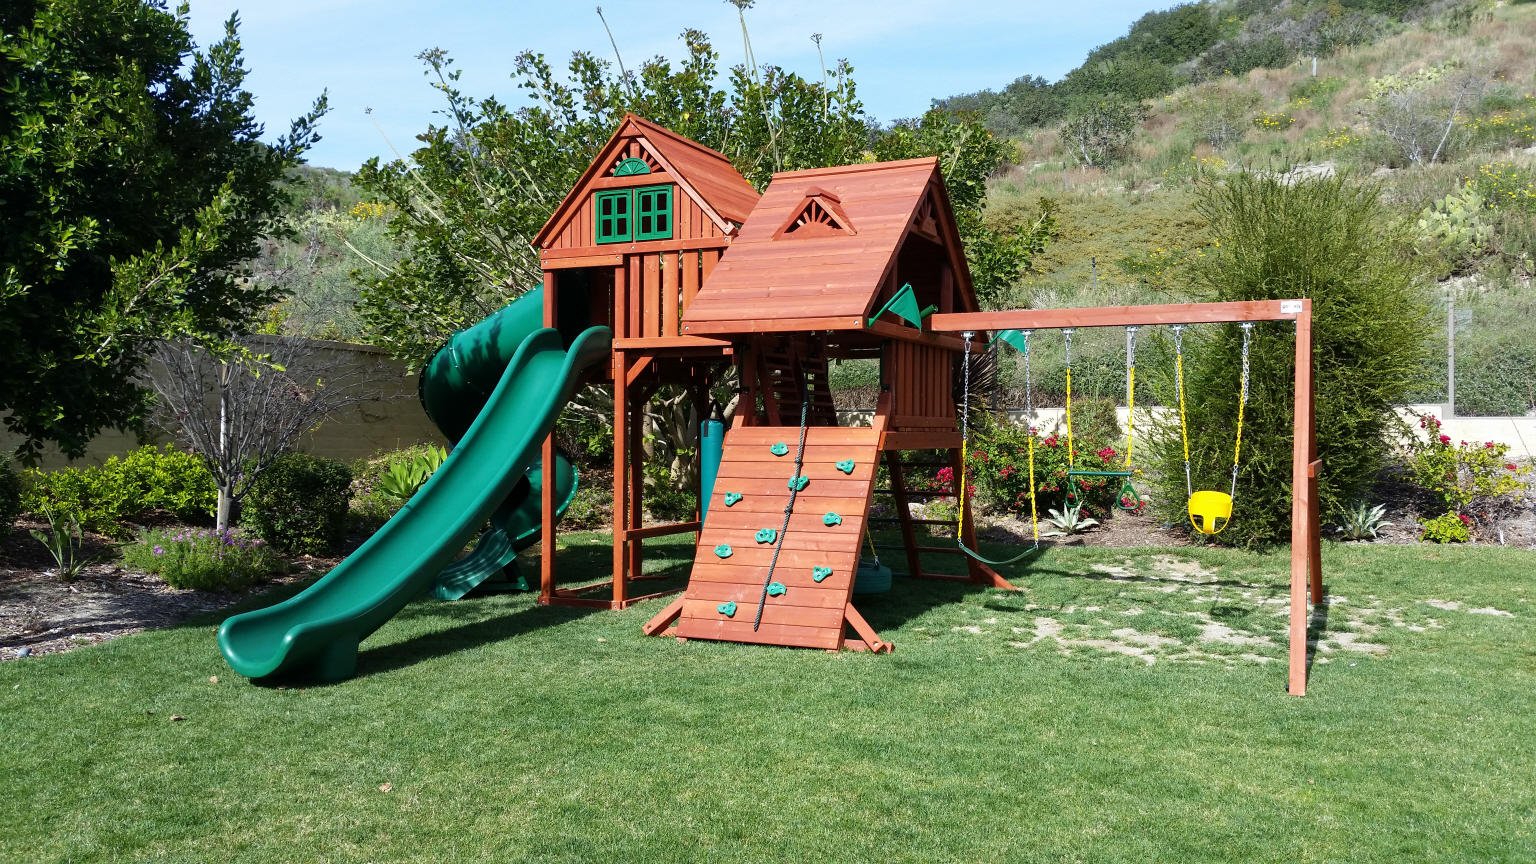 Gorilla Play Set